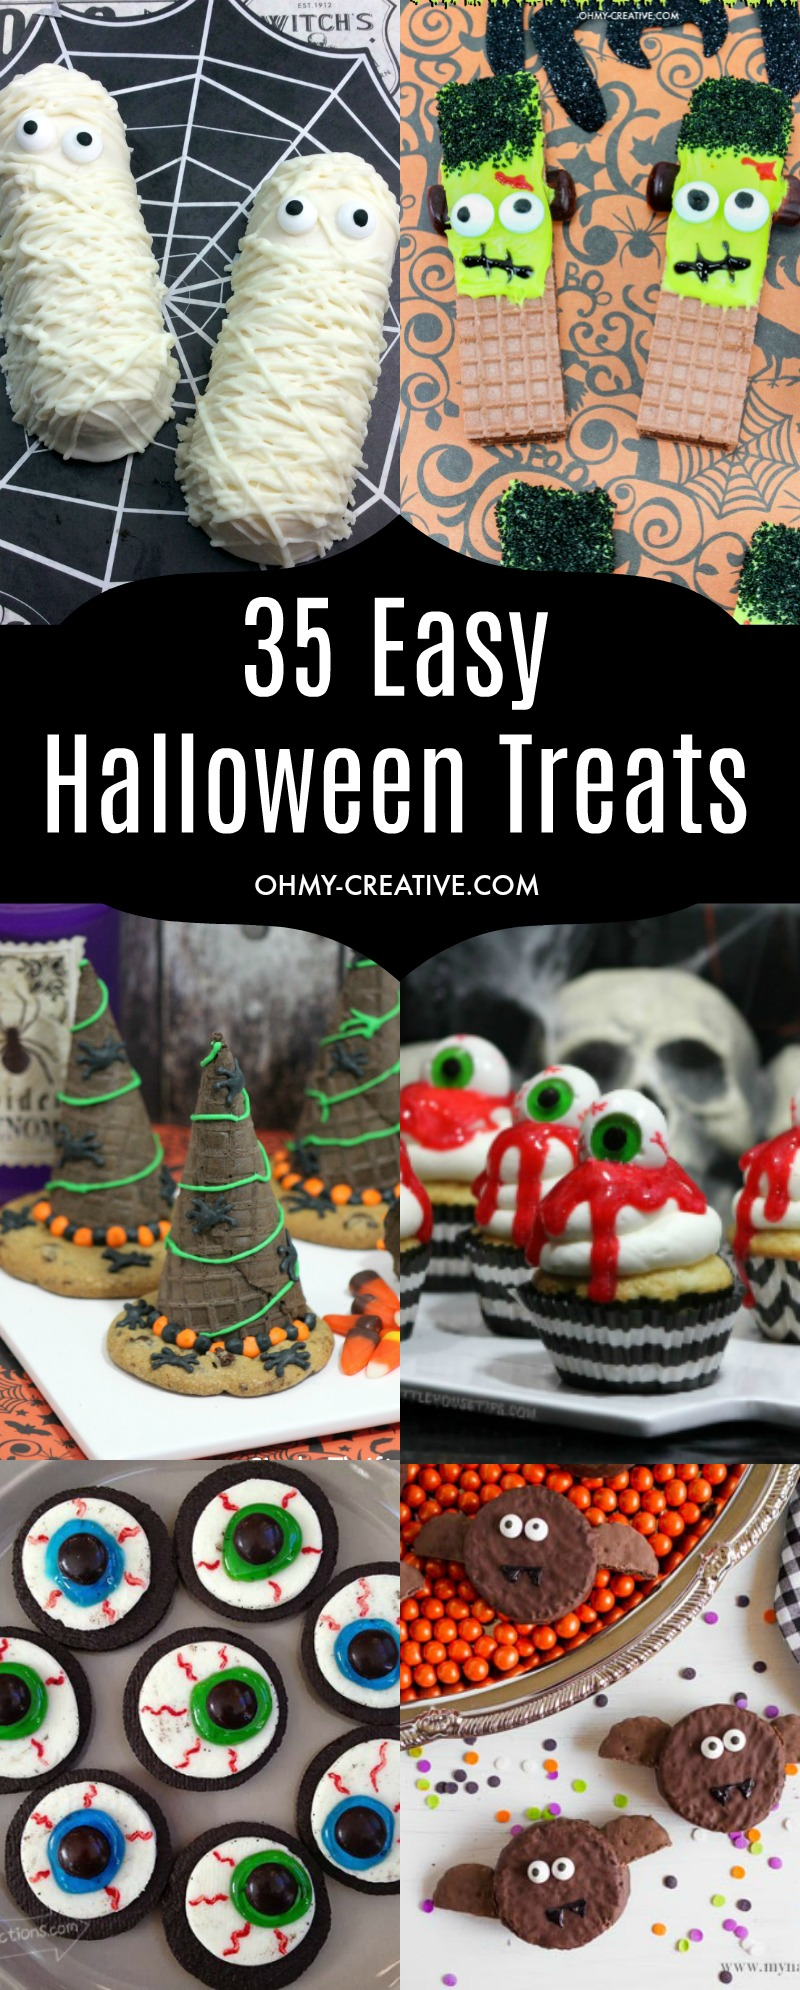 35 Cute + Easy Halloween Treats You Can Make Today